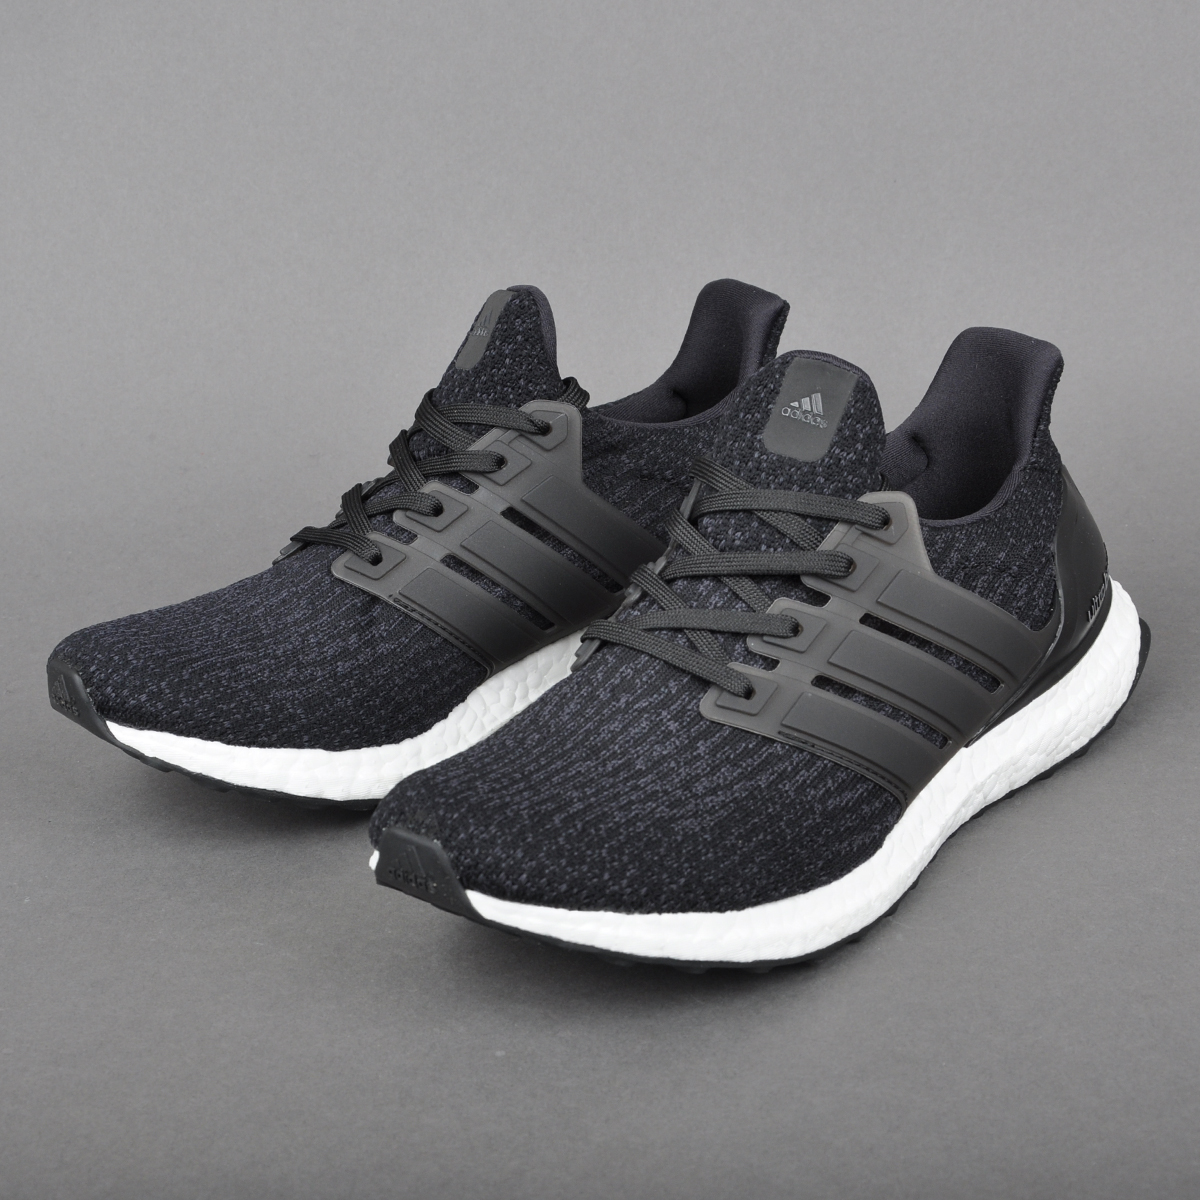 adidas Ultra Boost 3.0 Grey Black